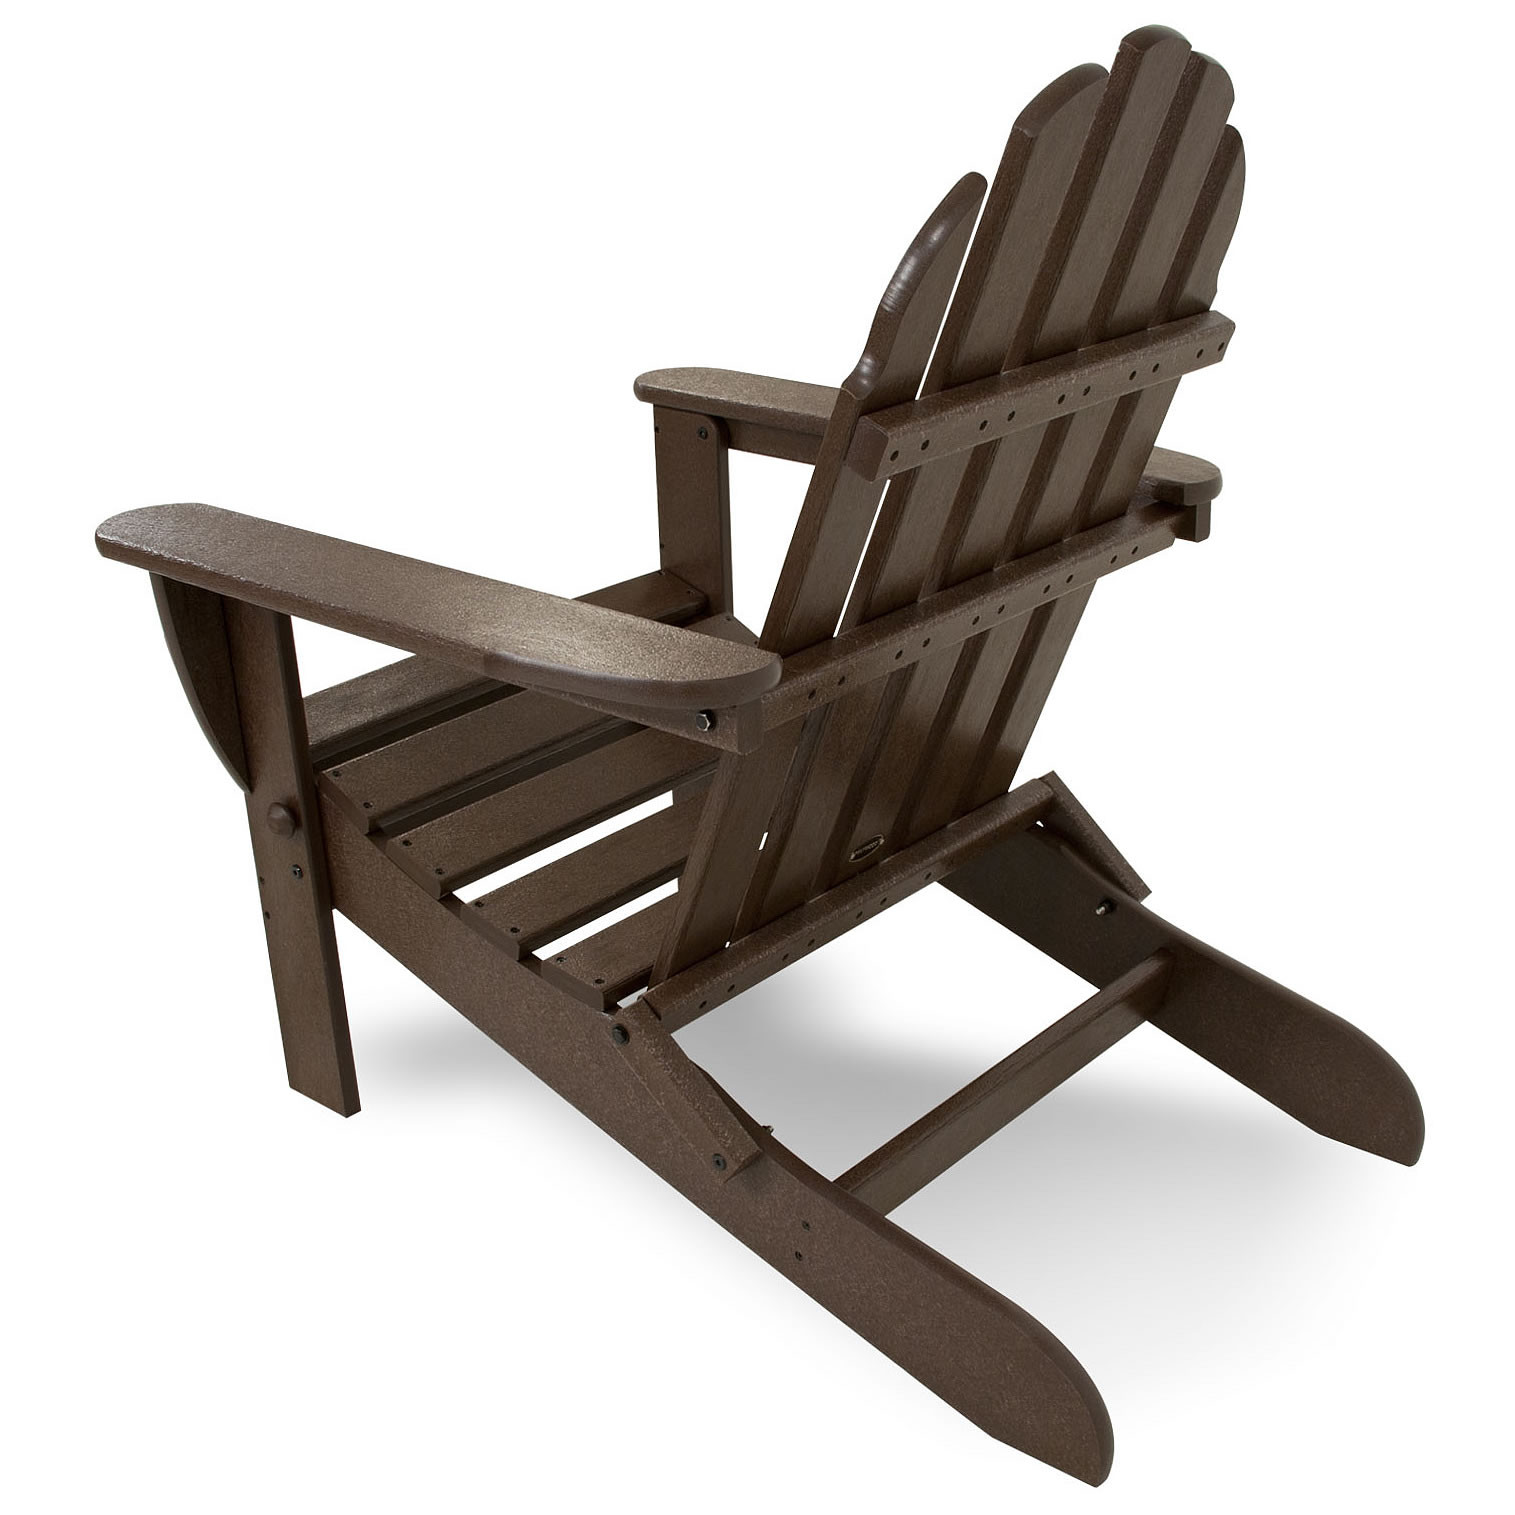 polywood classic adirondack chair antique chinese chairs ottoman set